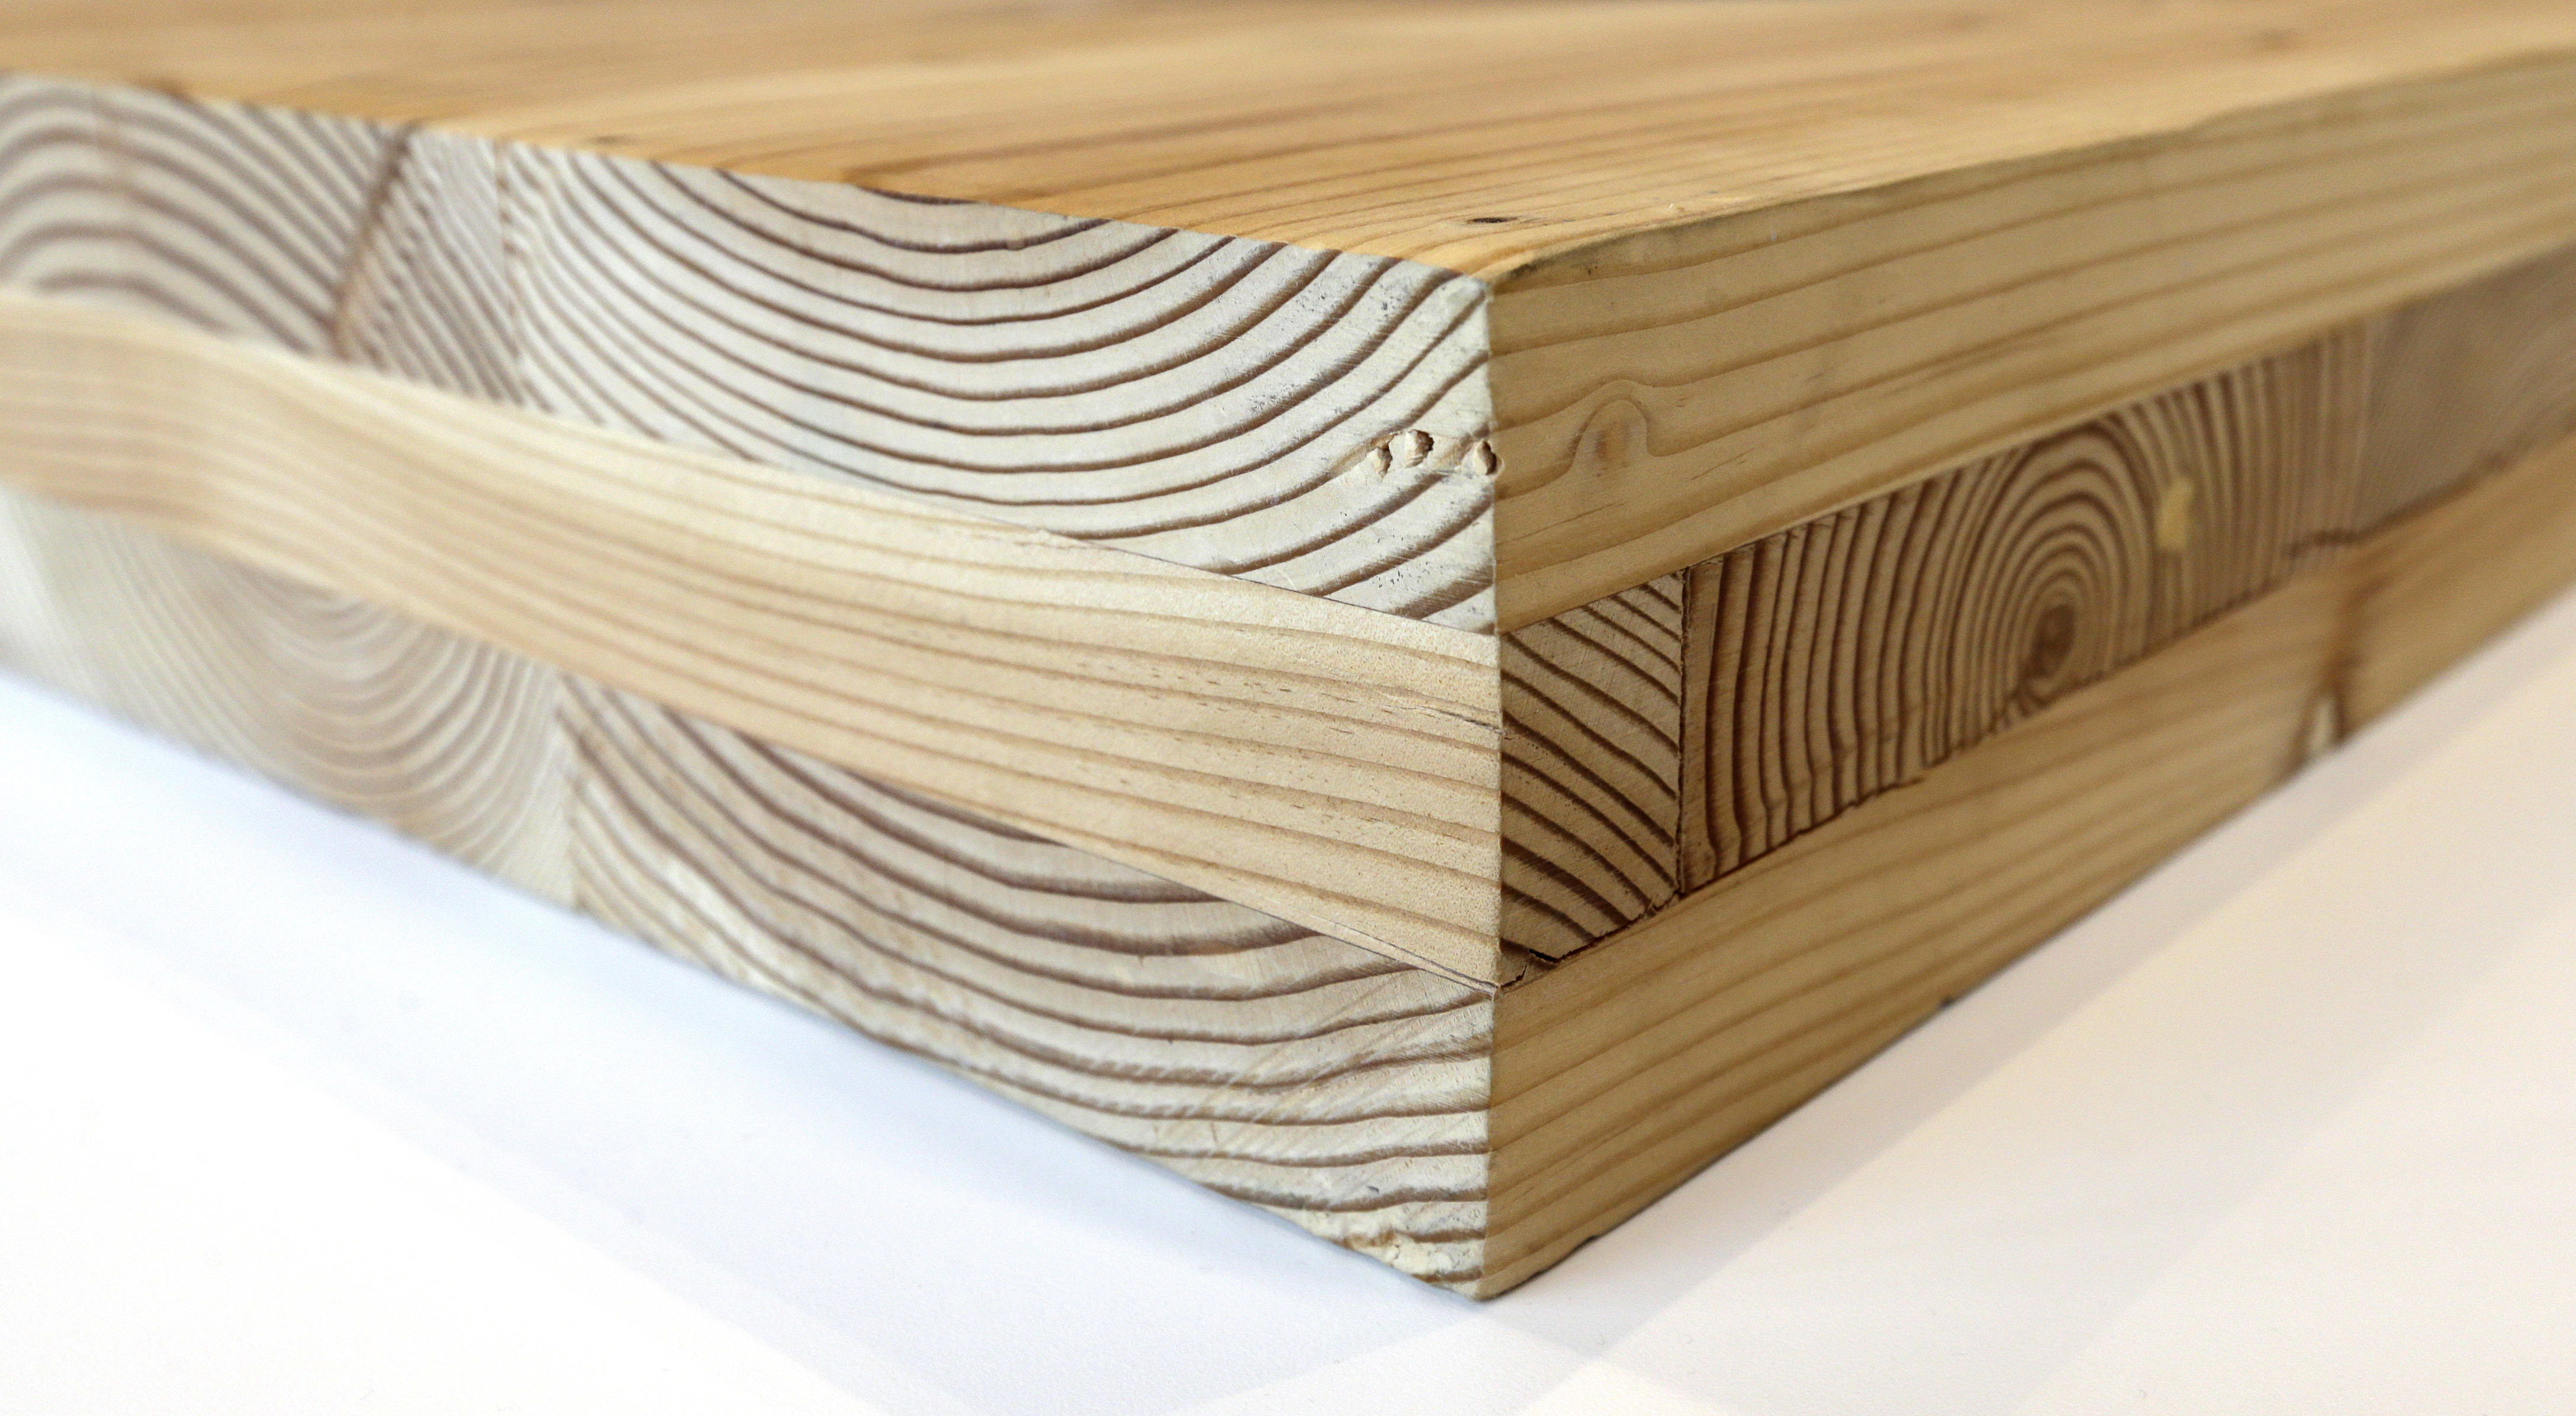 New wood technology may offer hope for struggling timber